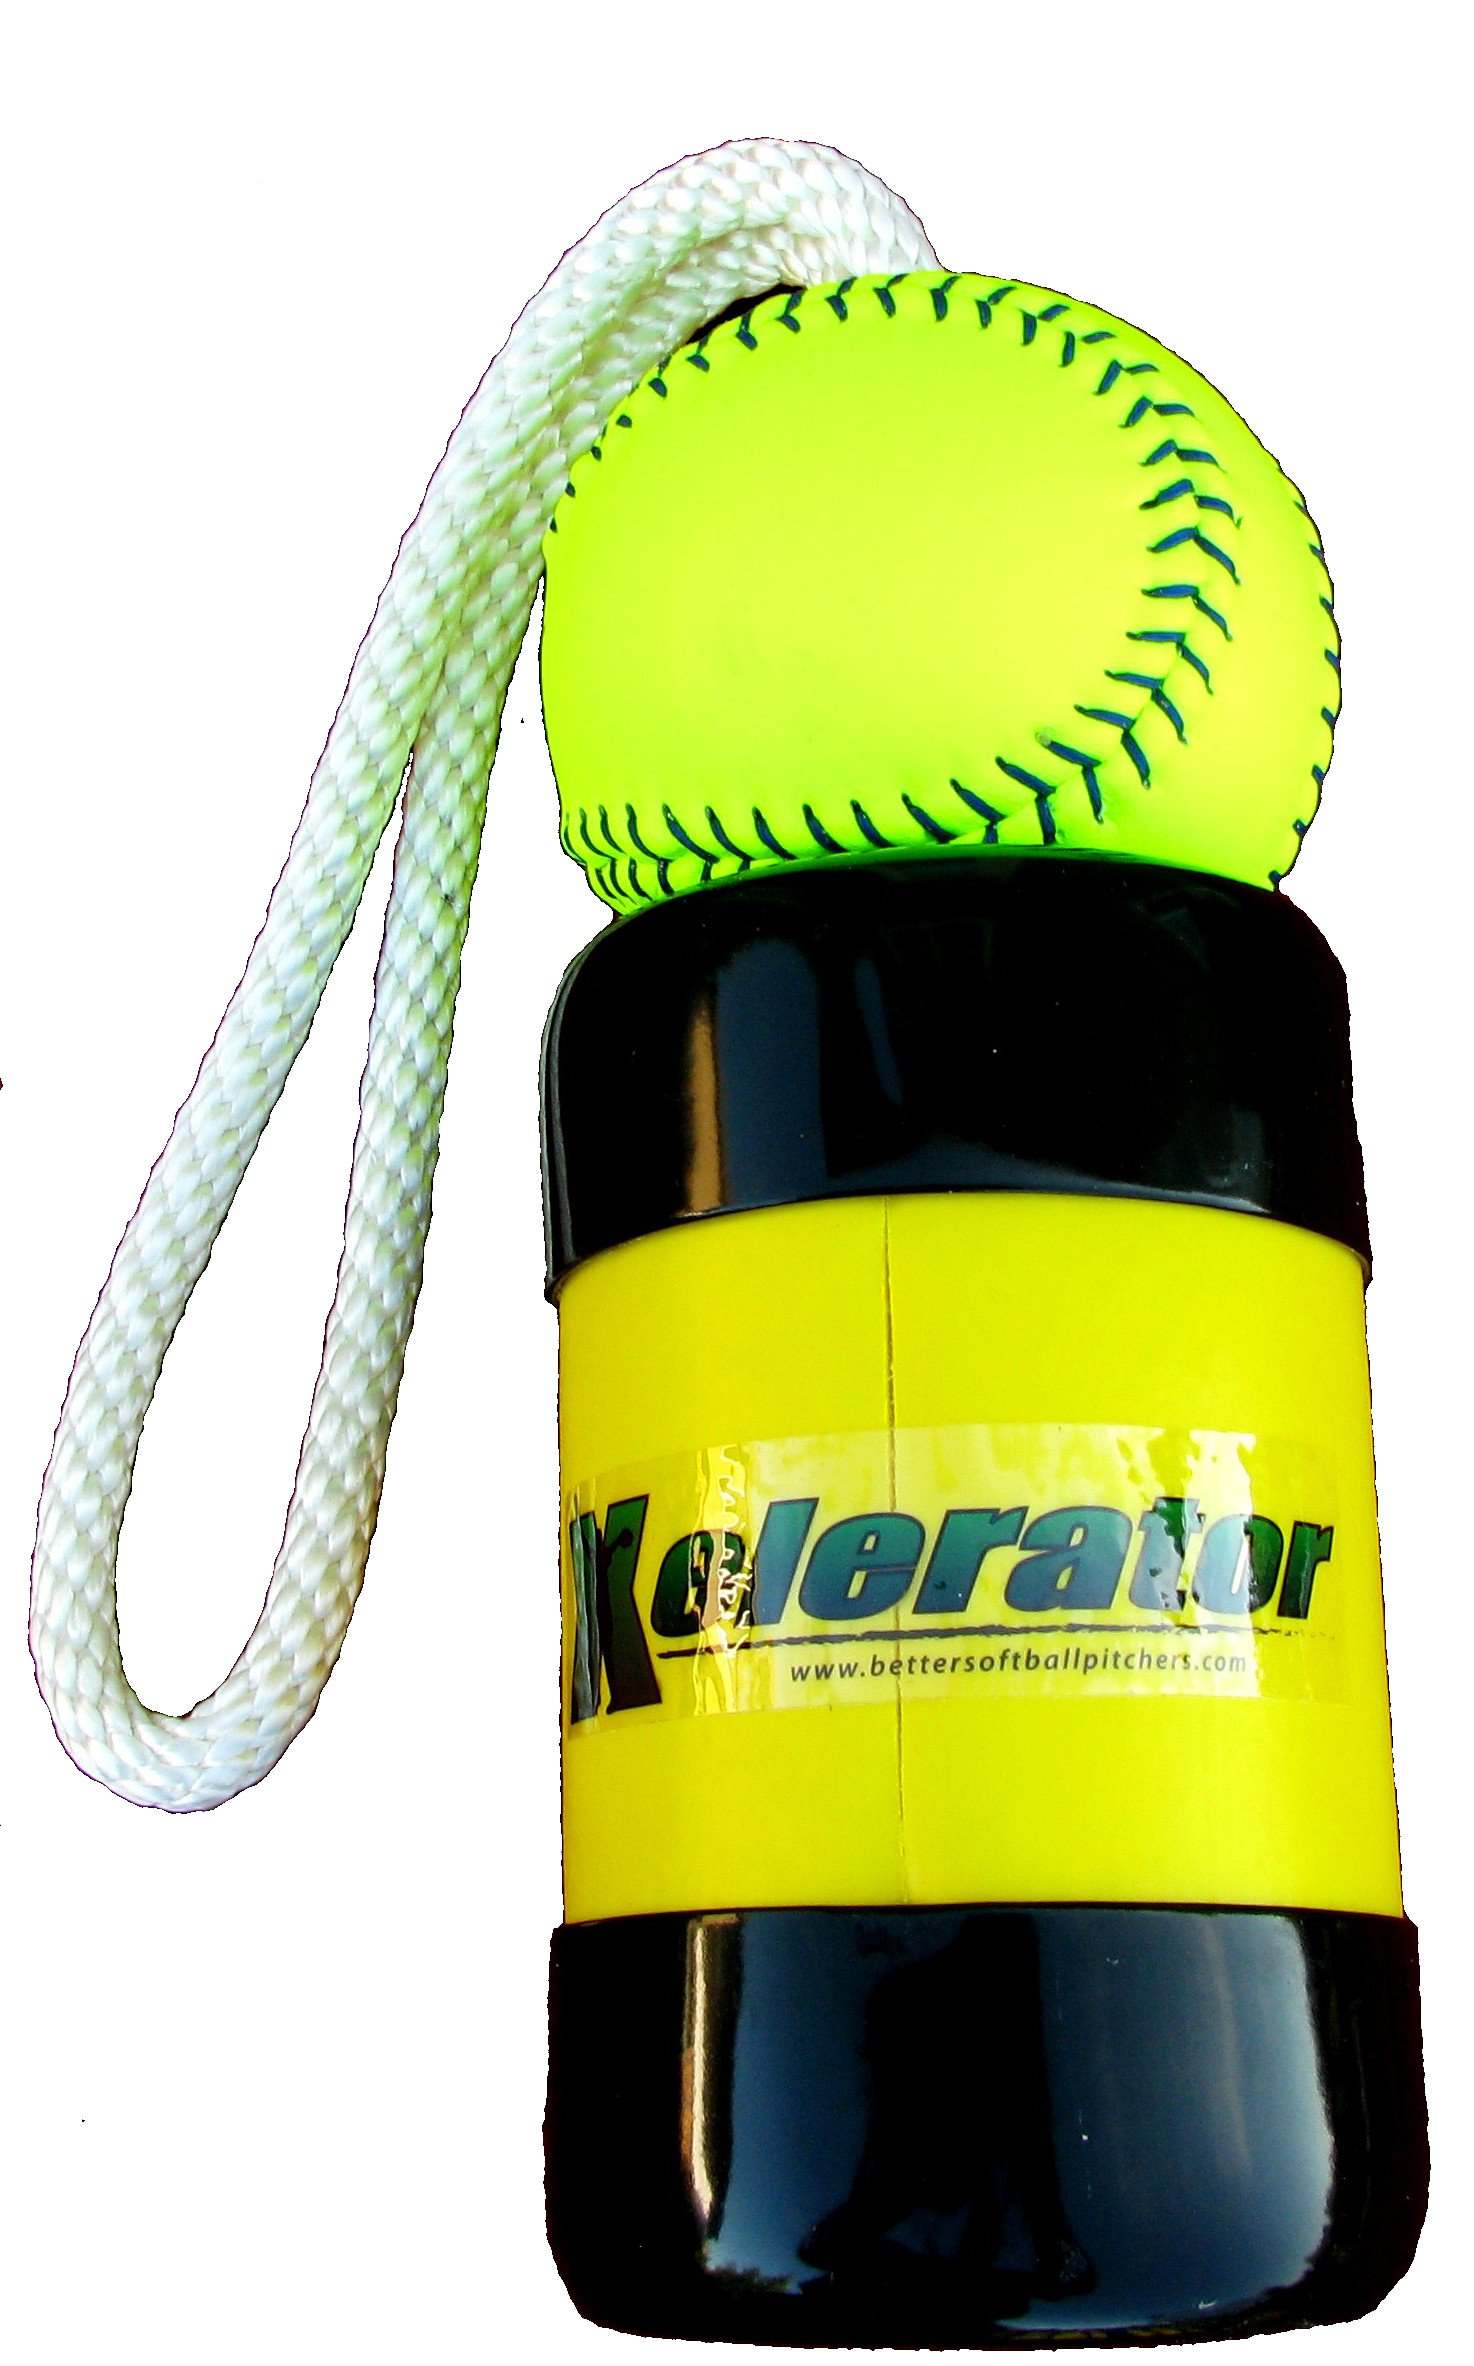 The Mini Xelerator 10u Fastpitch Softball Pitching Trainer and Warm Up Tool with 11 Inch Premium Leather Indoor Ball for Improved Grip